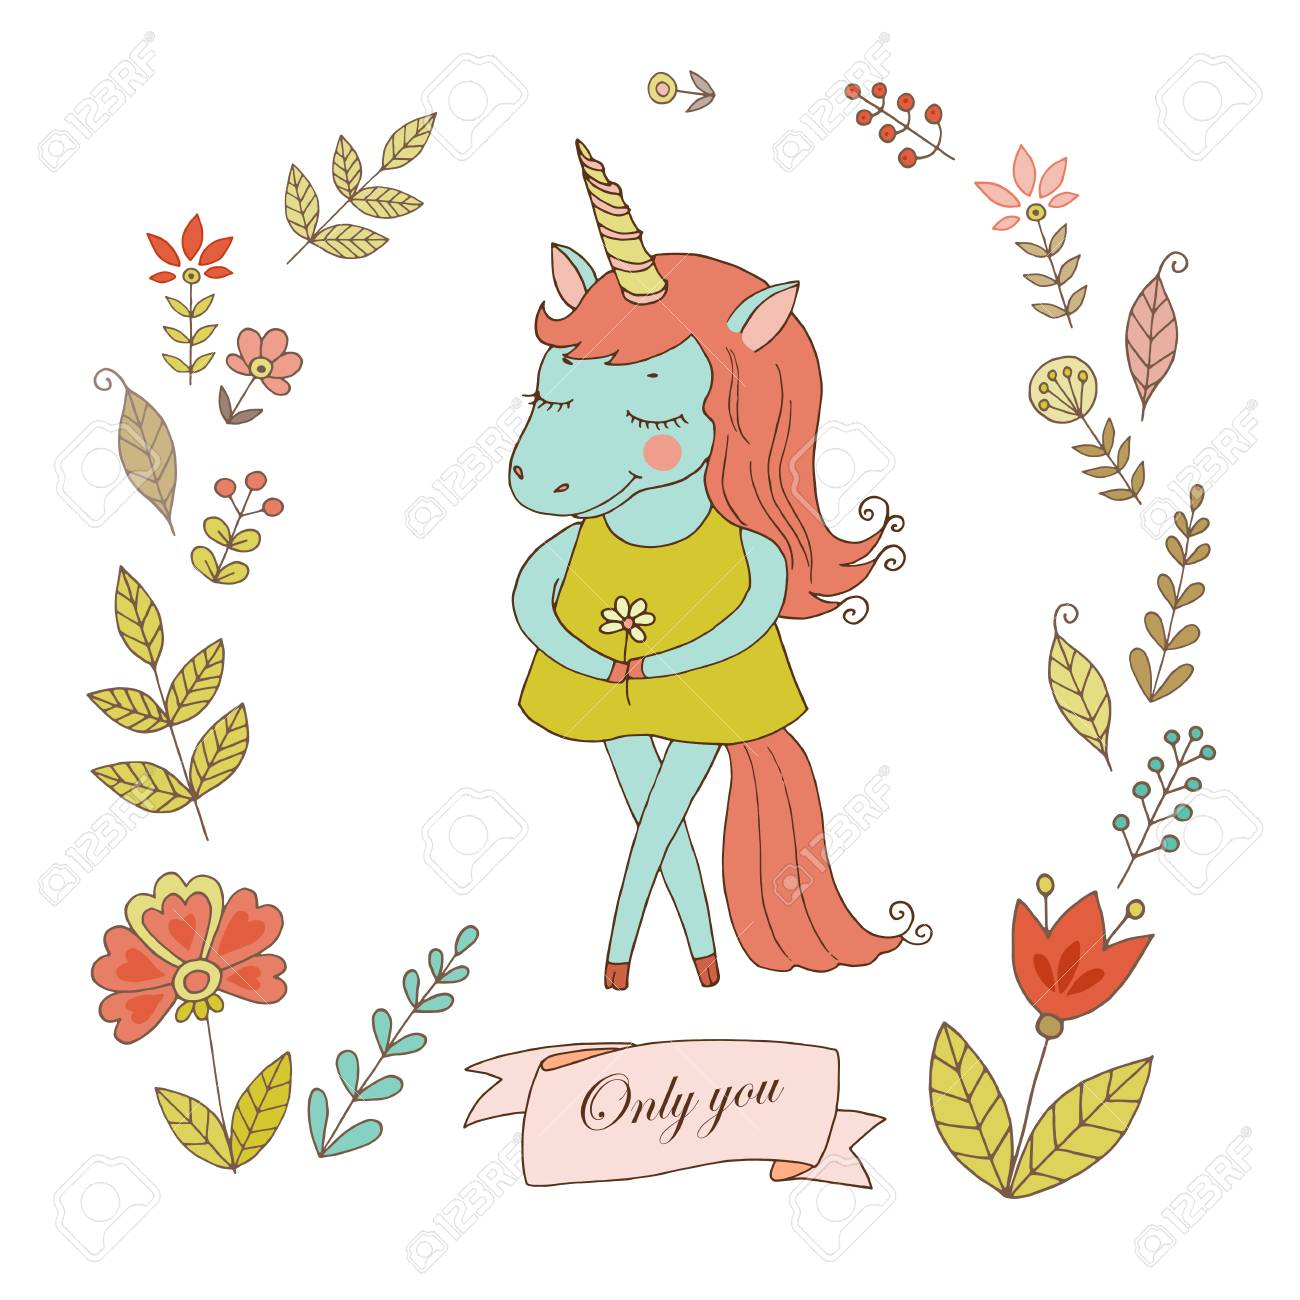 Cute Unicorn With Vintage Frame For Your Design In Doodle Style ...